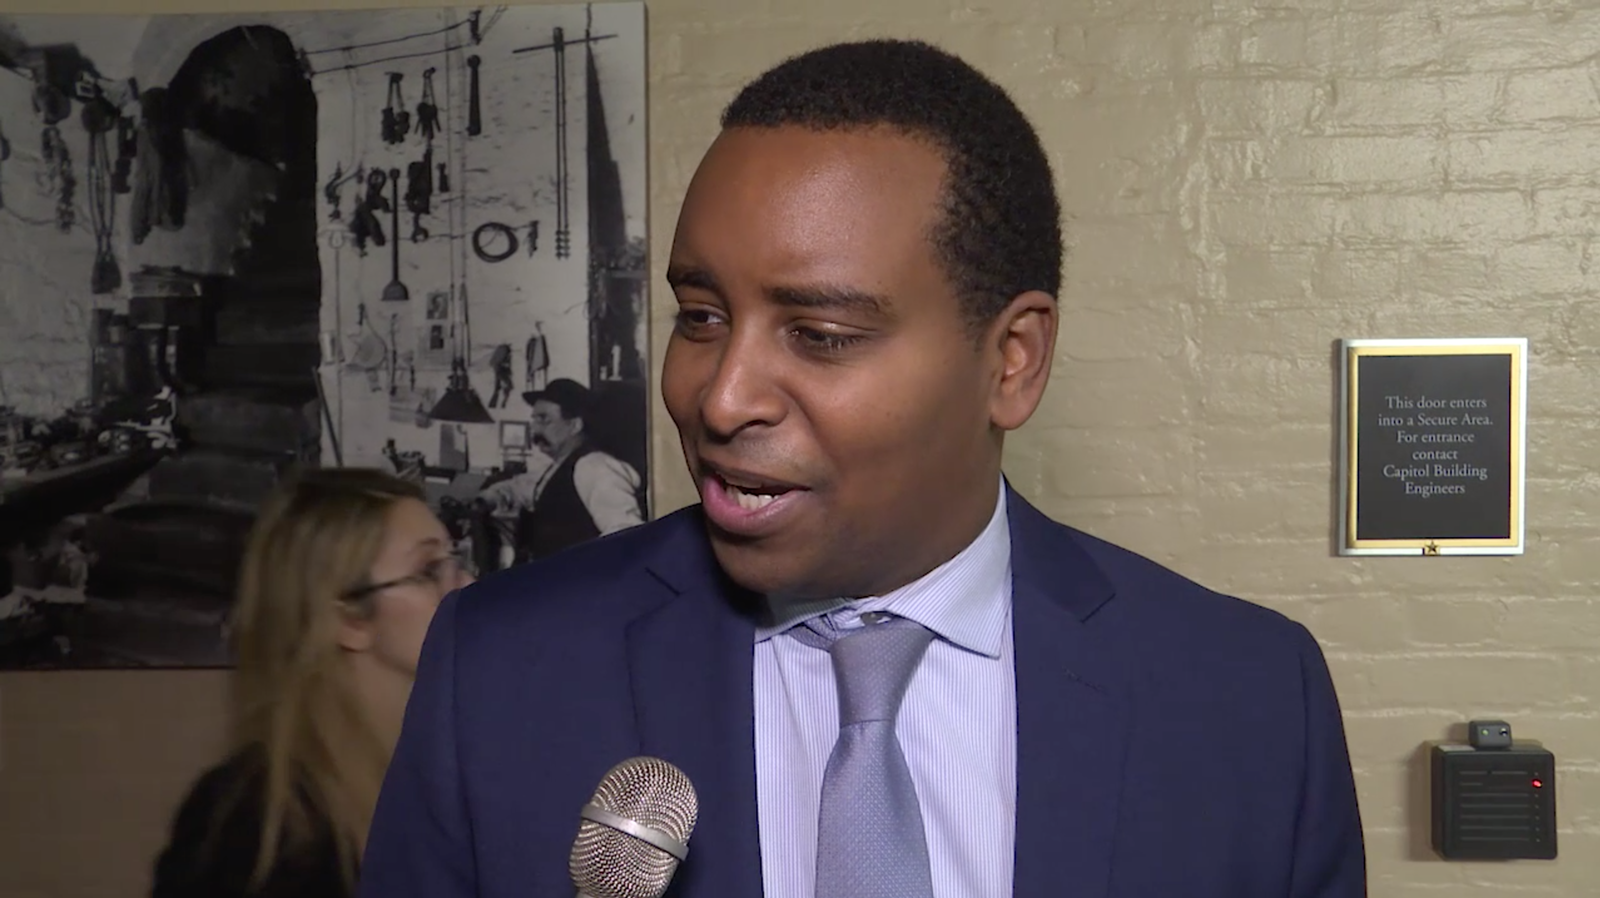 Rep. Joe Neguse (D-CO) |{ }Photo: Sinclair Broadcast Group